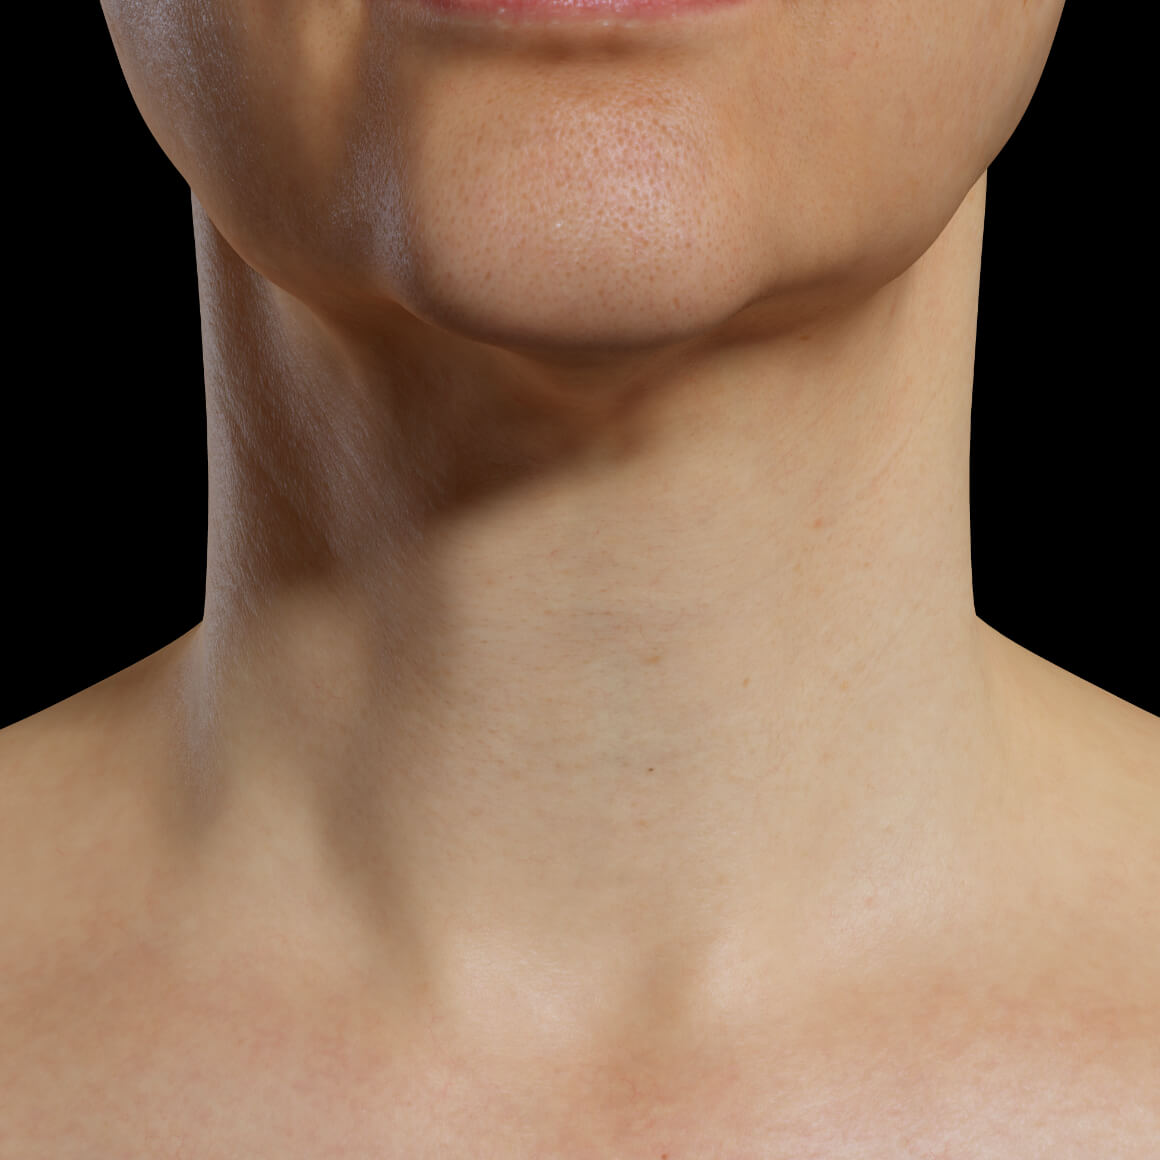 A female patient at Clinique Chloé facing front after Fotona 4D laser treatments for skin tightening of the neck